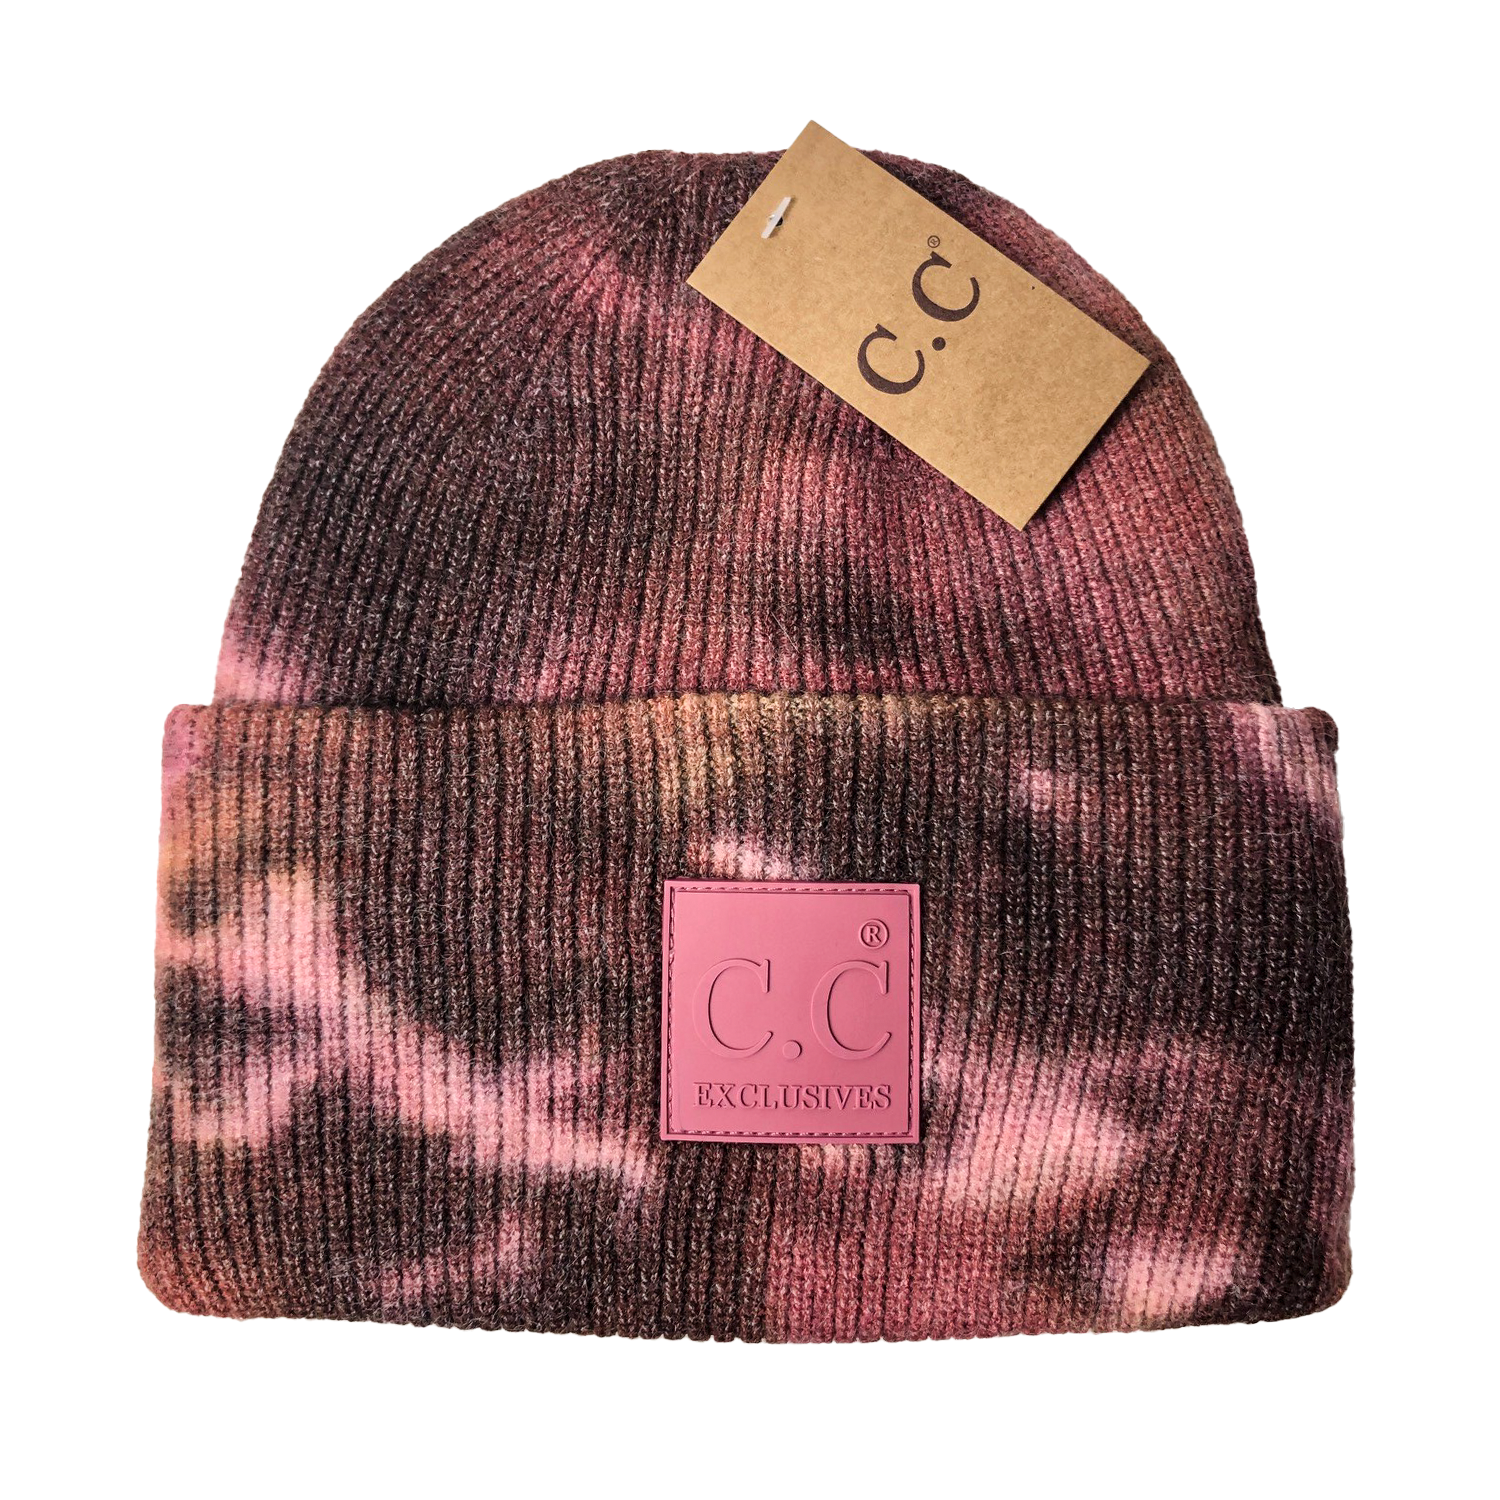 HAT-7380 Tie Dye Beanie with C.C Rubber Patch - Brown/Wild Ginger